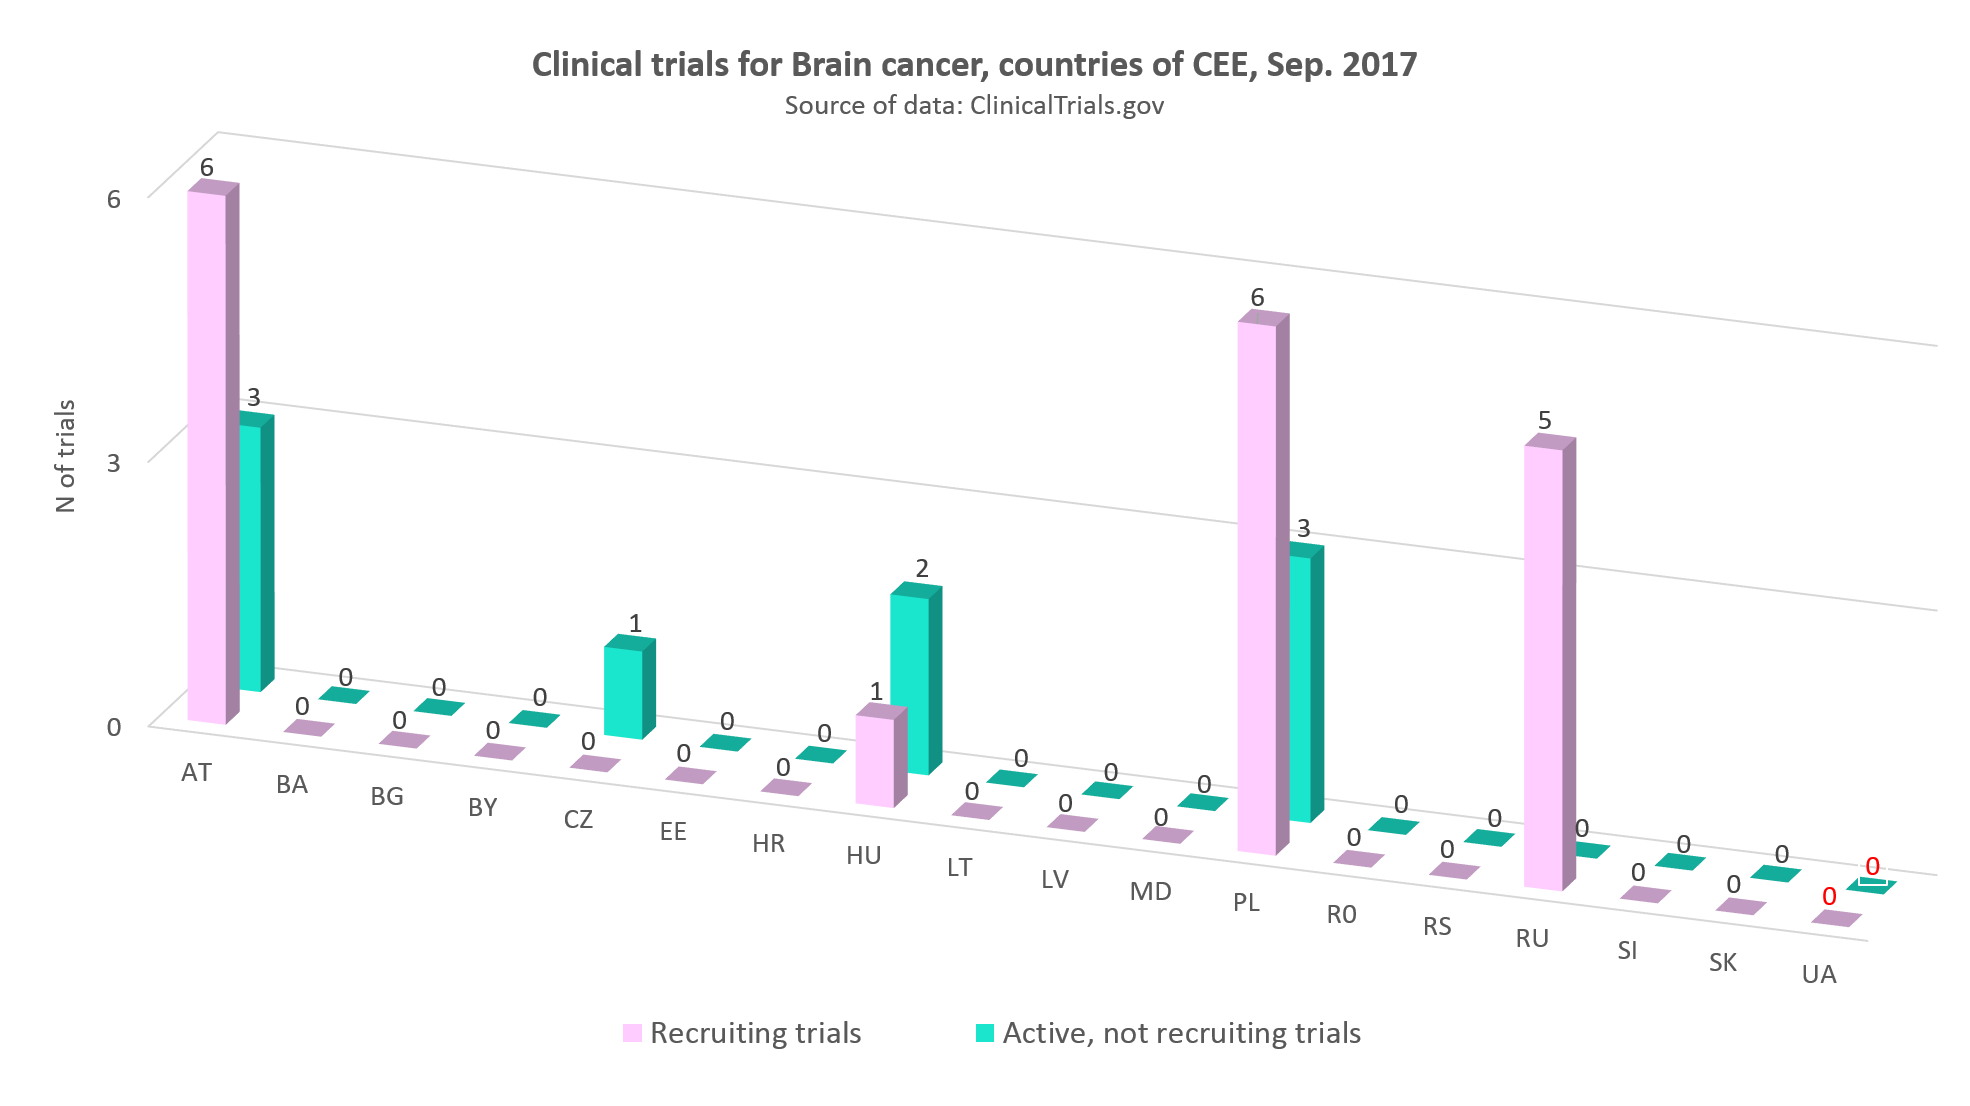 Clinical trials for cerebral tumor in the countries of CEE, September 2017